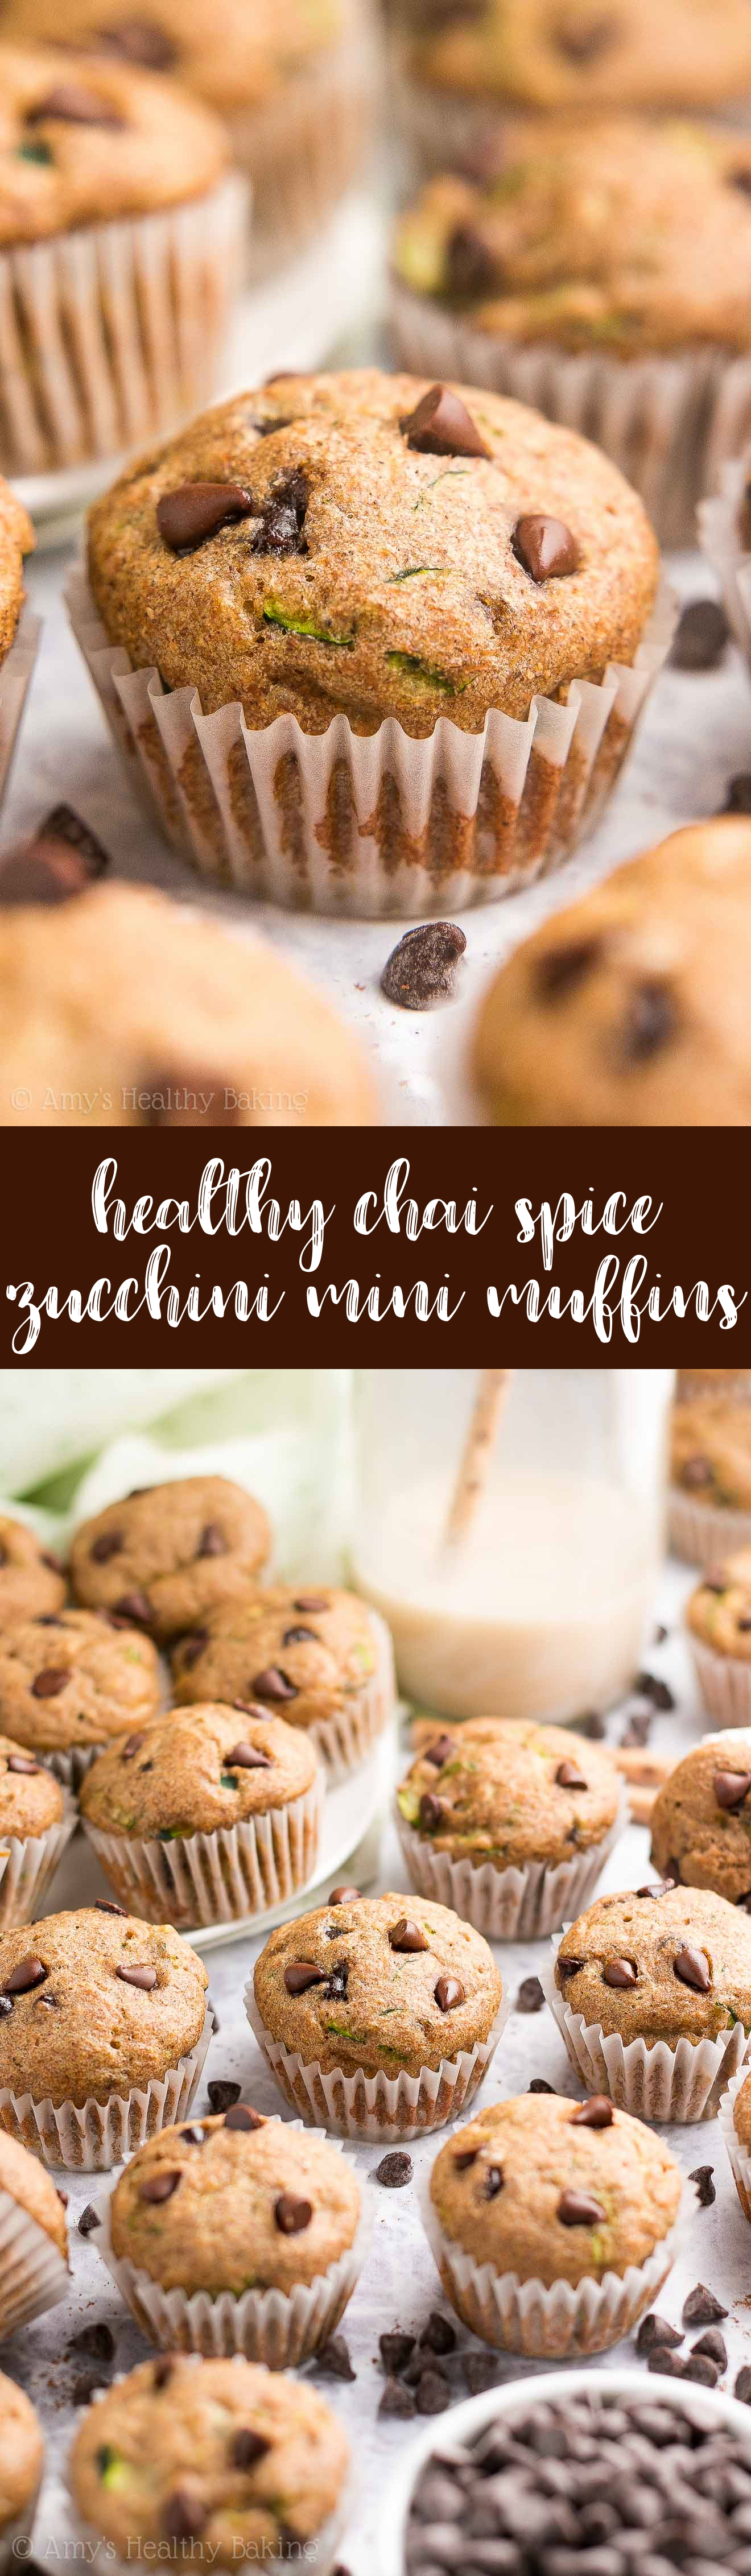 {HEALTHY!} Chai Spice Chocolate Chip Zucchini Mini Muffins -- only 38 calories & they taste like cupcakes! The spices make these the BEST zucchini muffins you'll EVER try! Trust me... I'm totally OBSESSED! #recipe #healthy #glutenfree #cleaneating